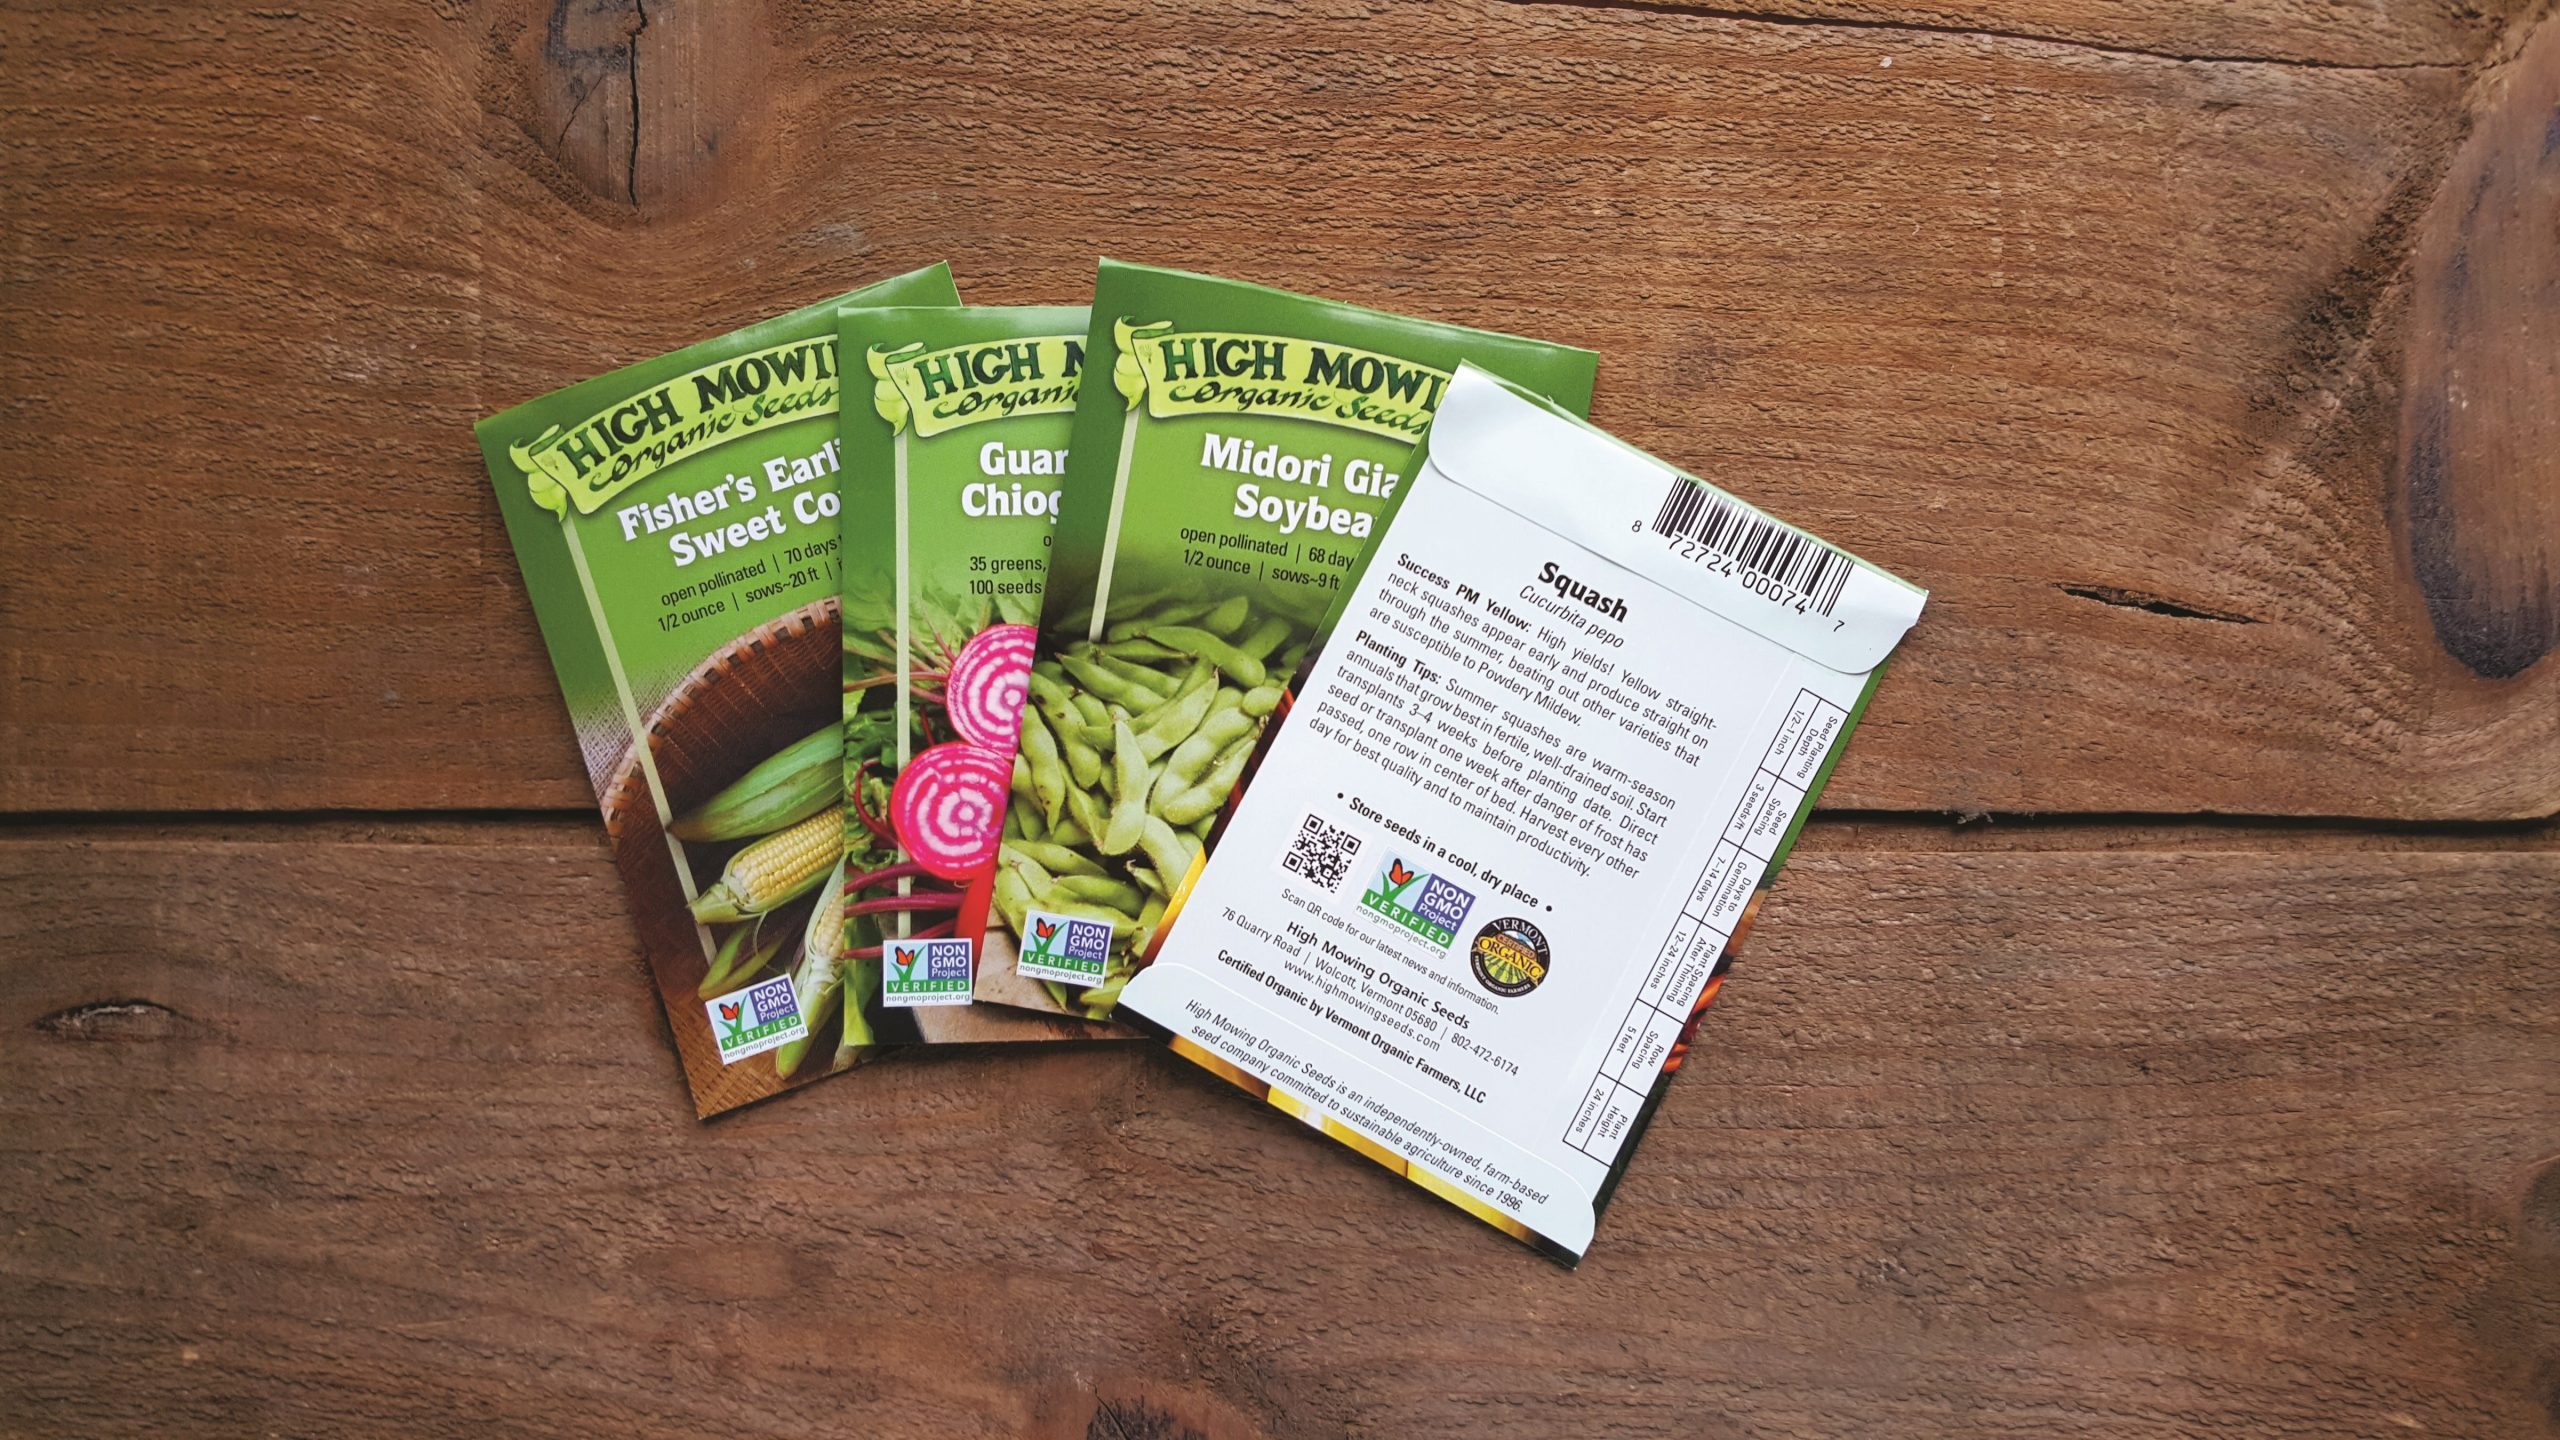 High Mowing seed packets